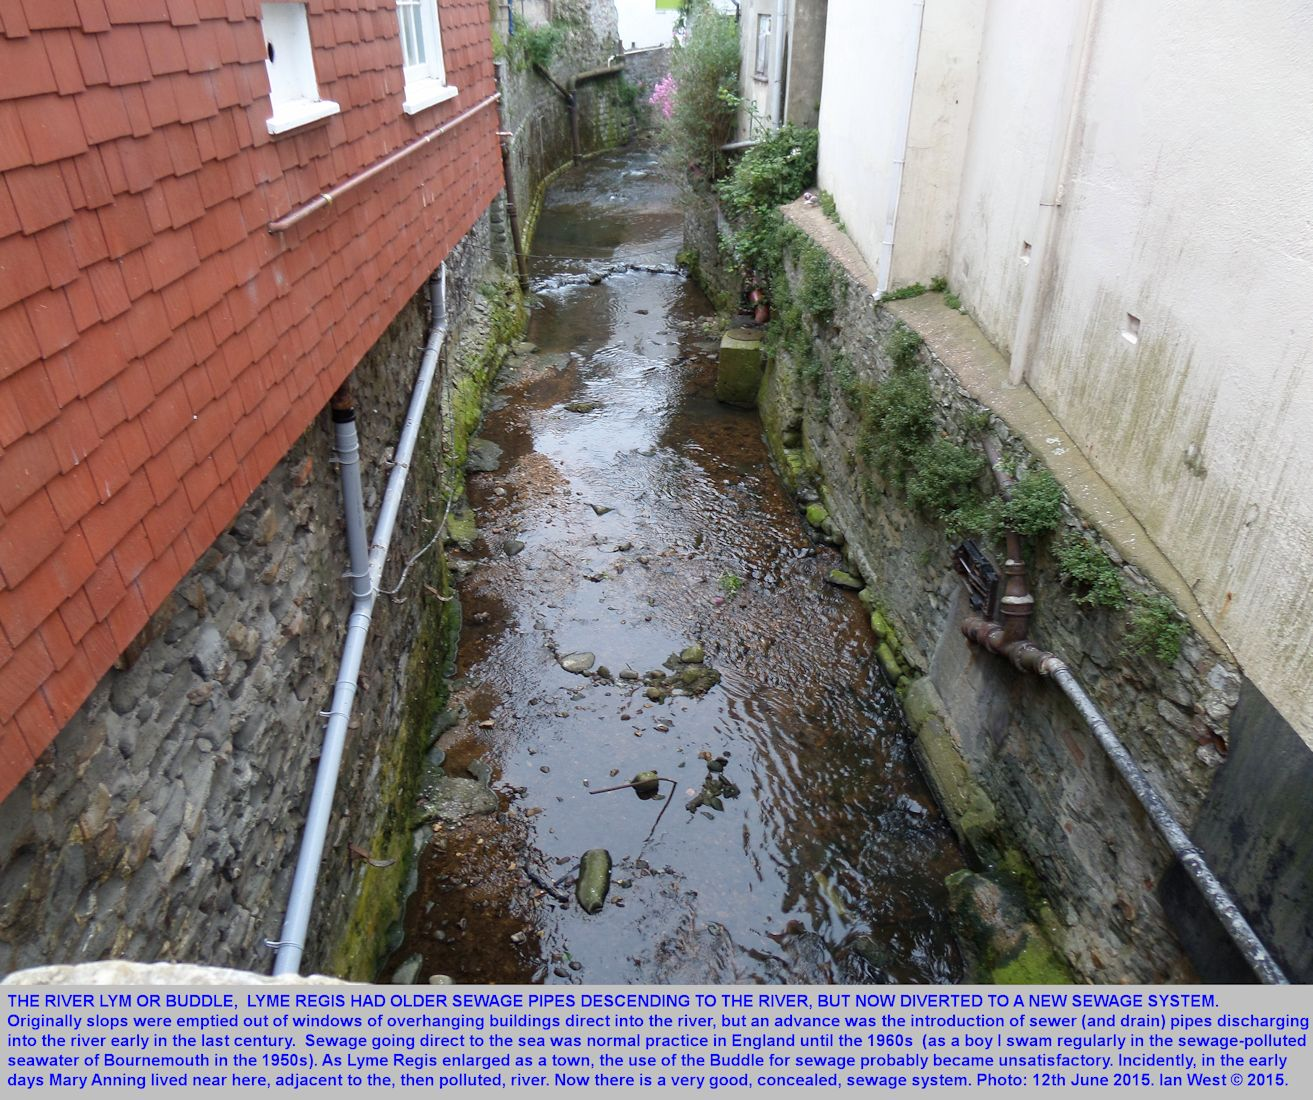 The River Lym at Lyme Regis, or Buddle, now a clean stream, but once, to some extent, an open sewer, photograph June 2015